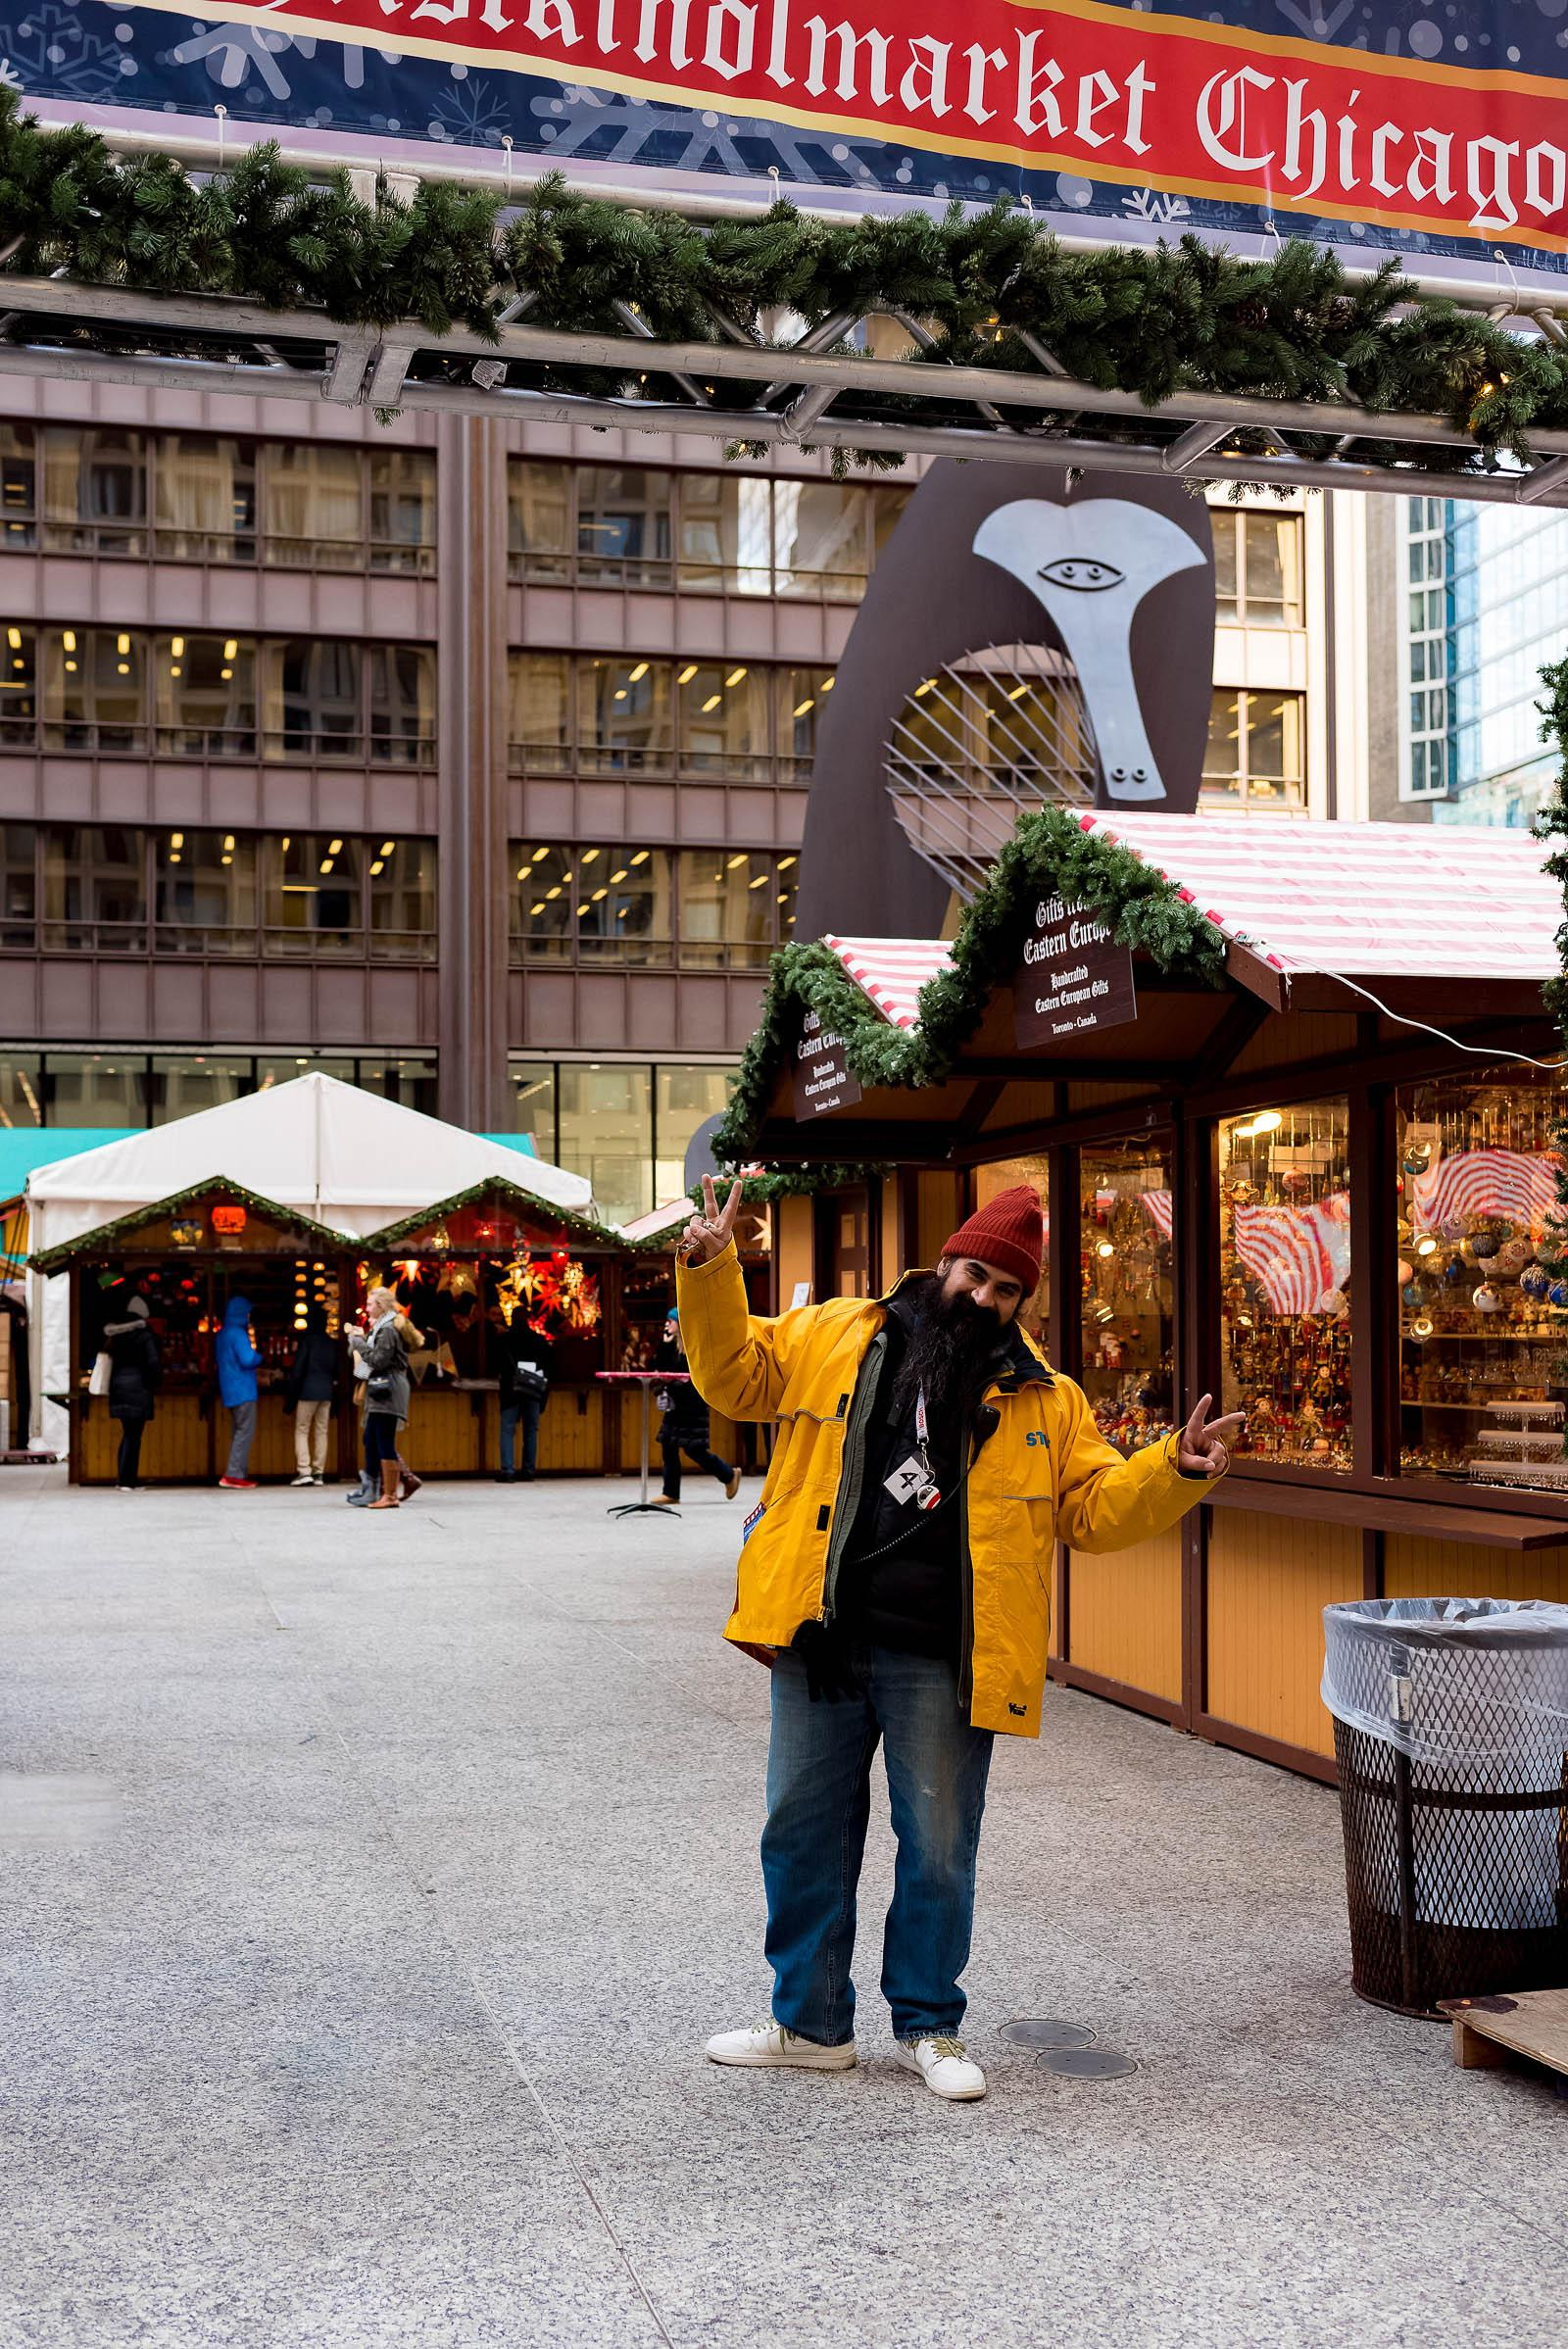 Christkindl Market Chicago 2017